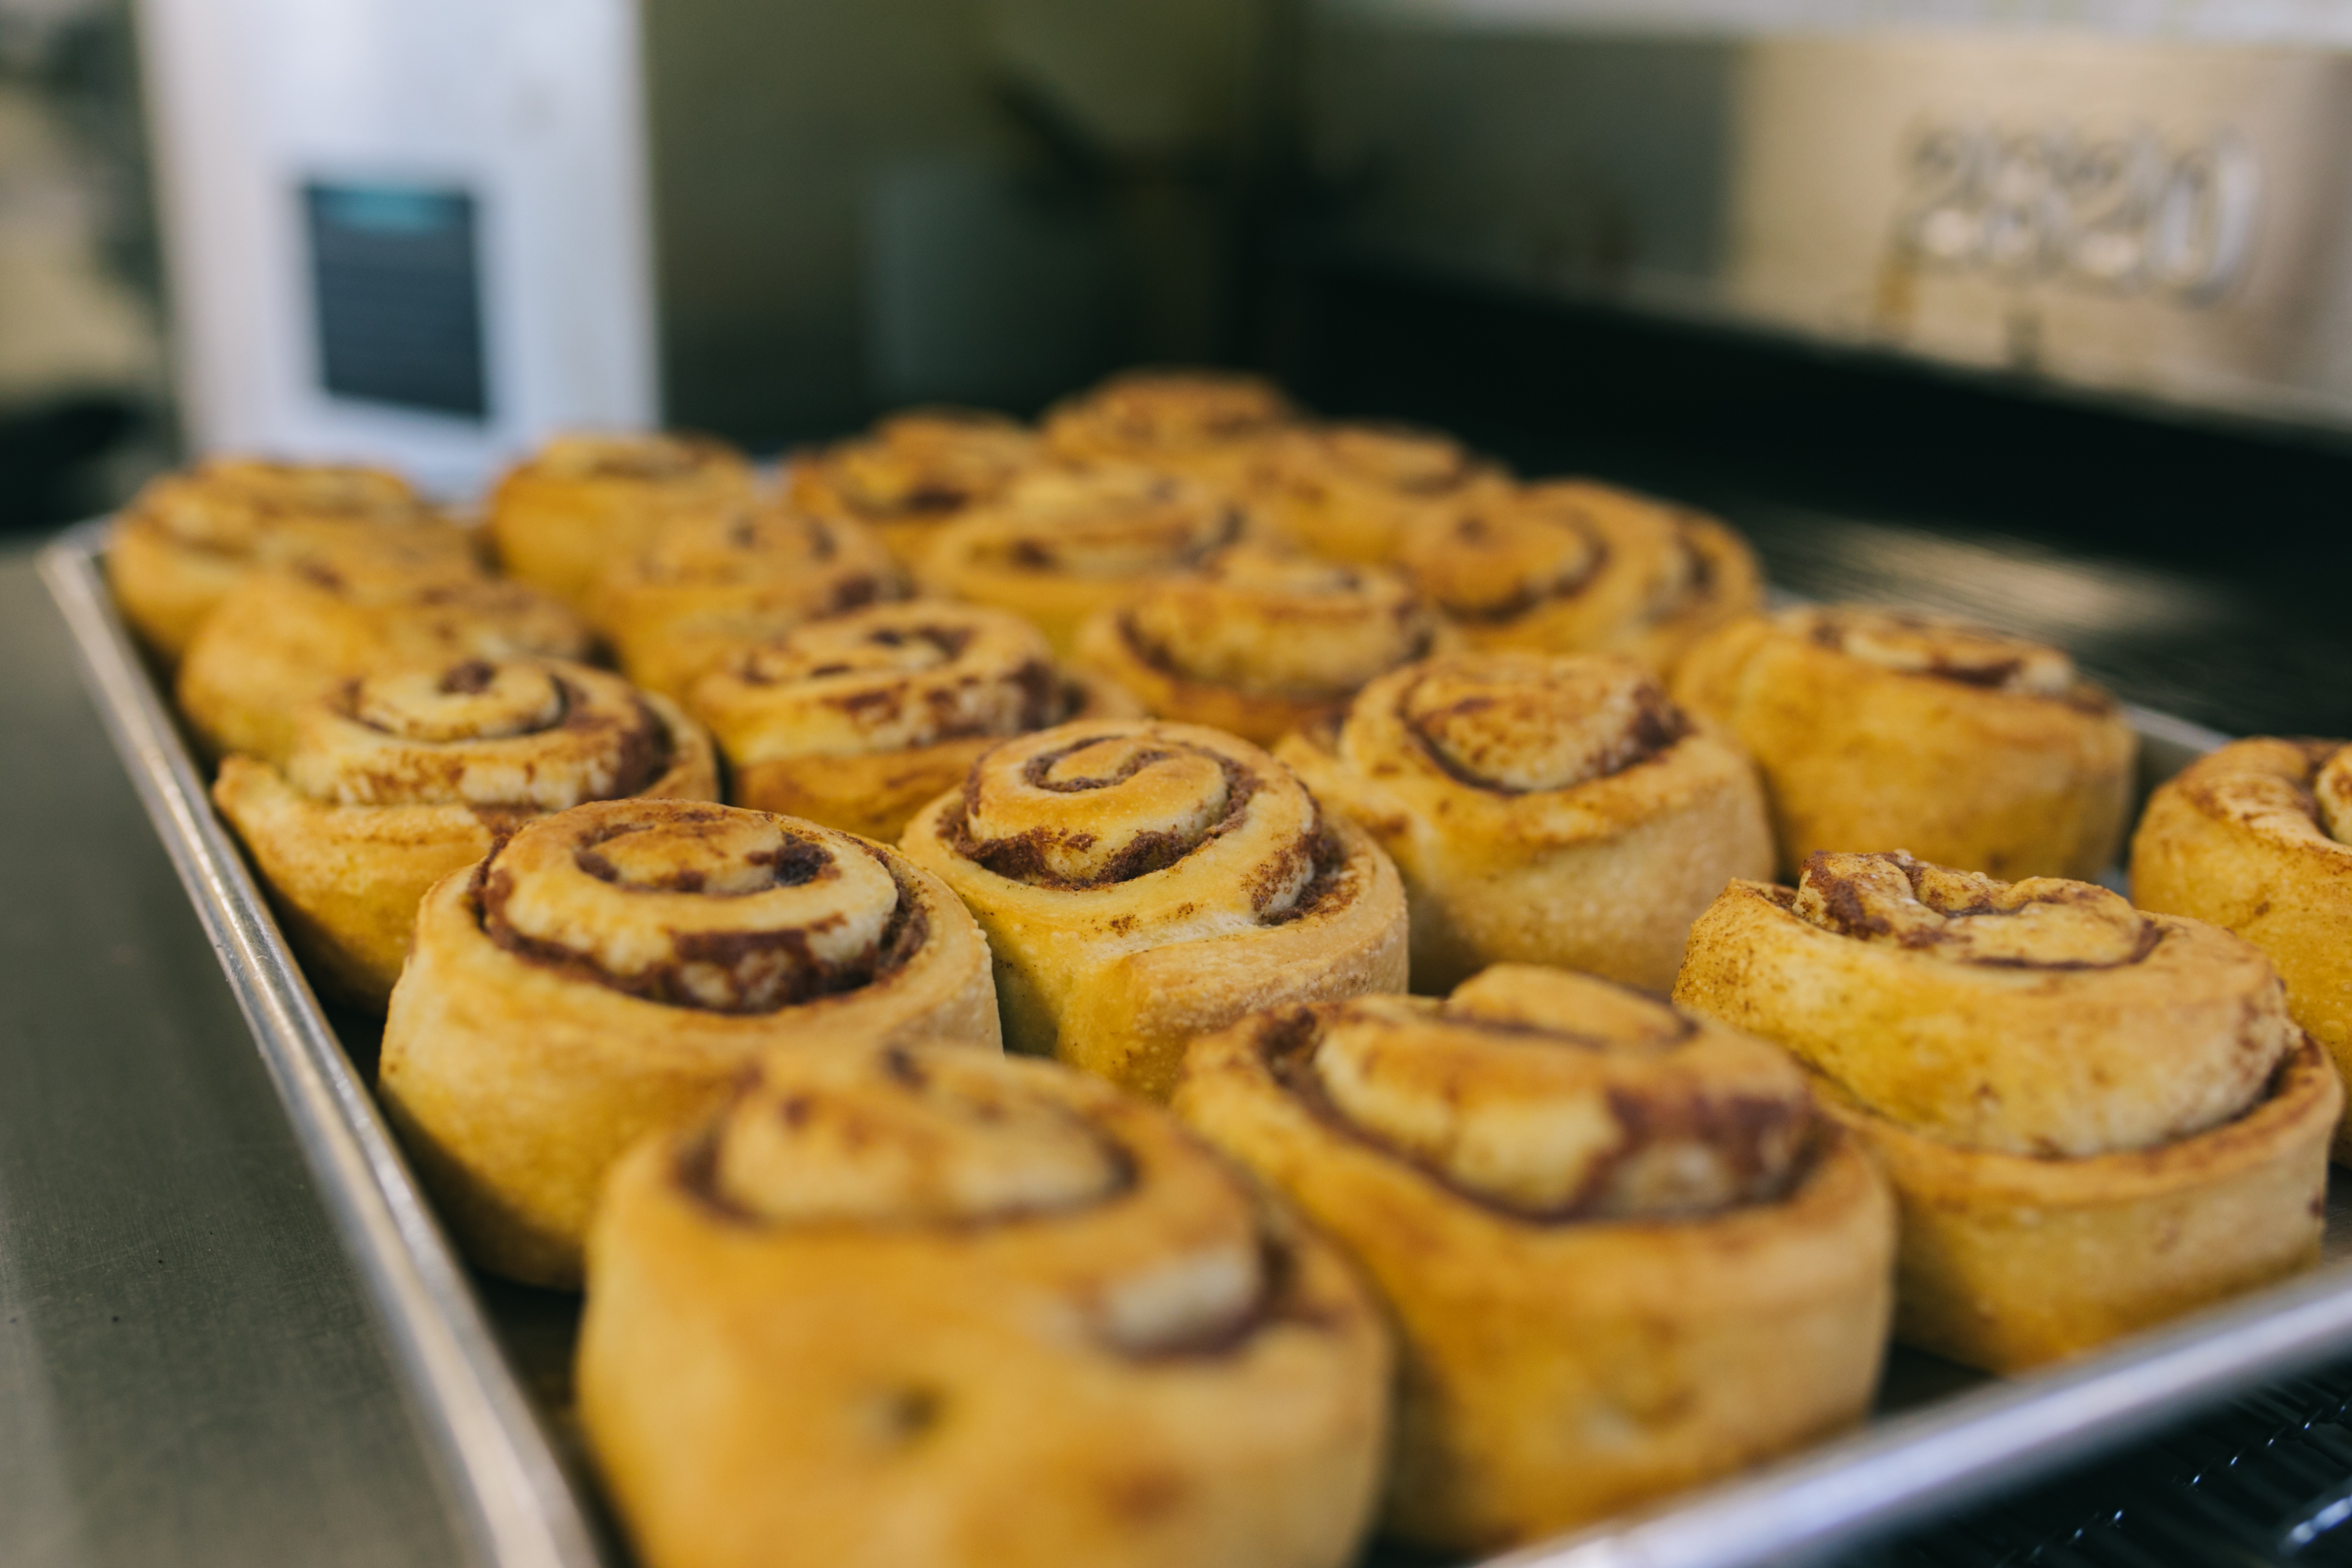 Pre-decorated cinnamon rolls on a tray